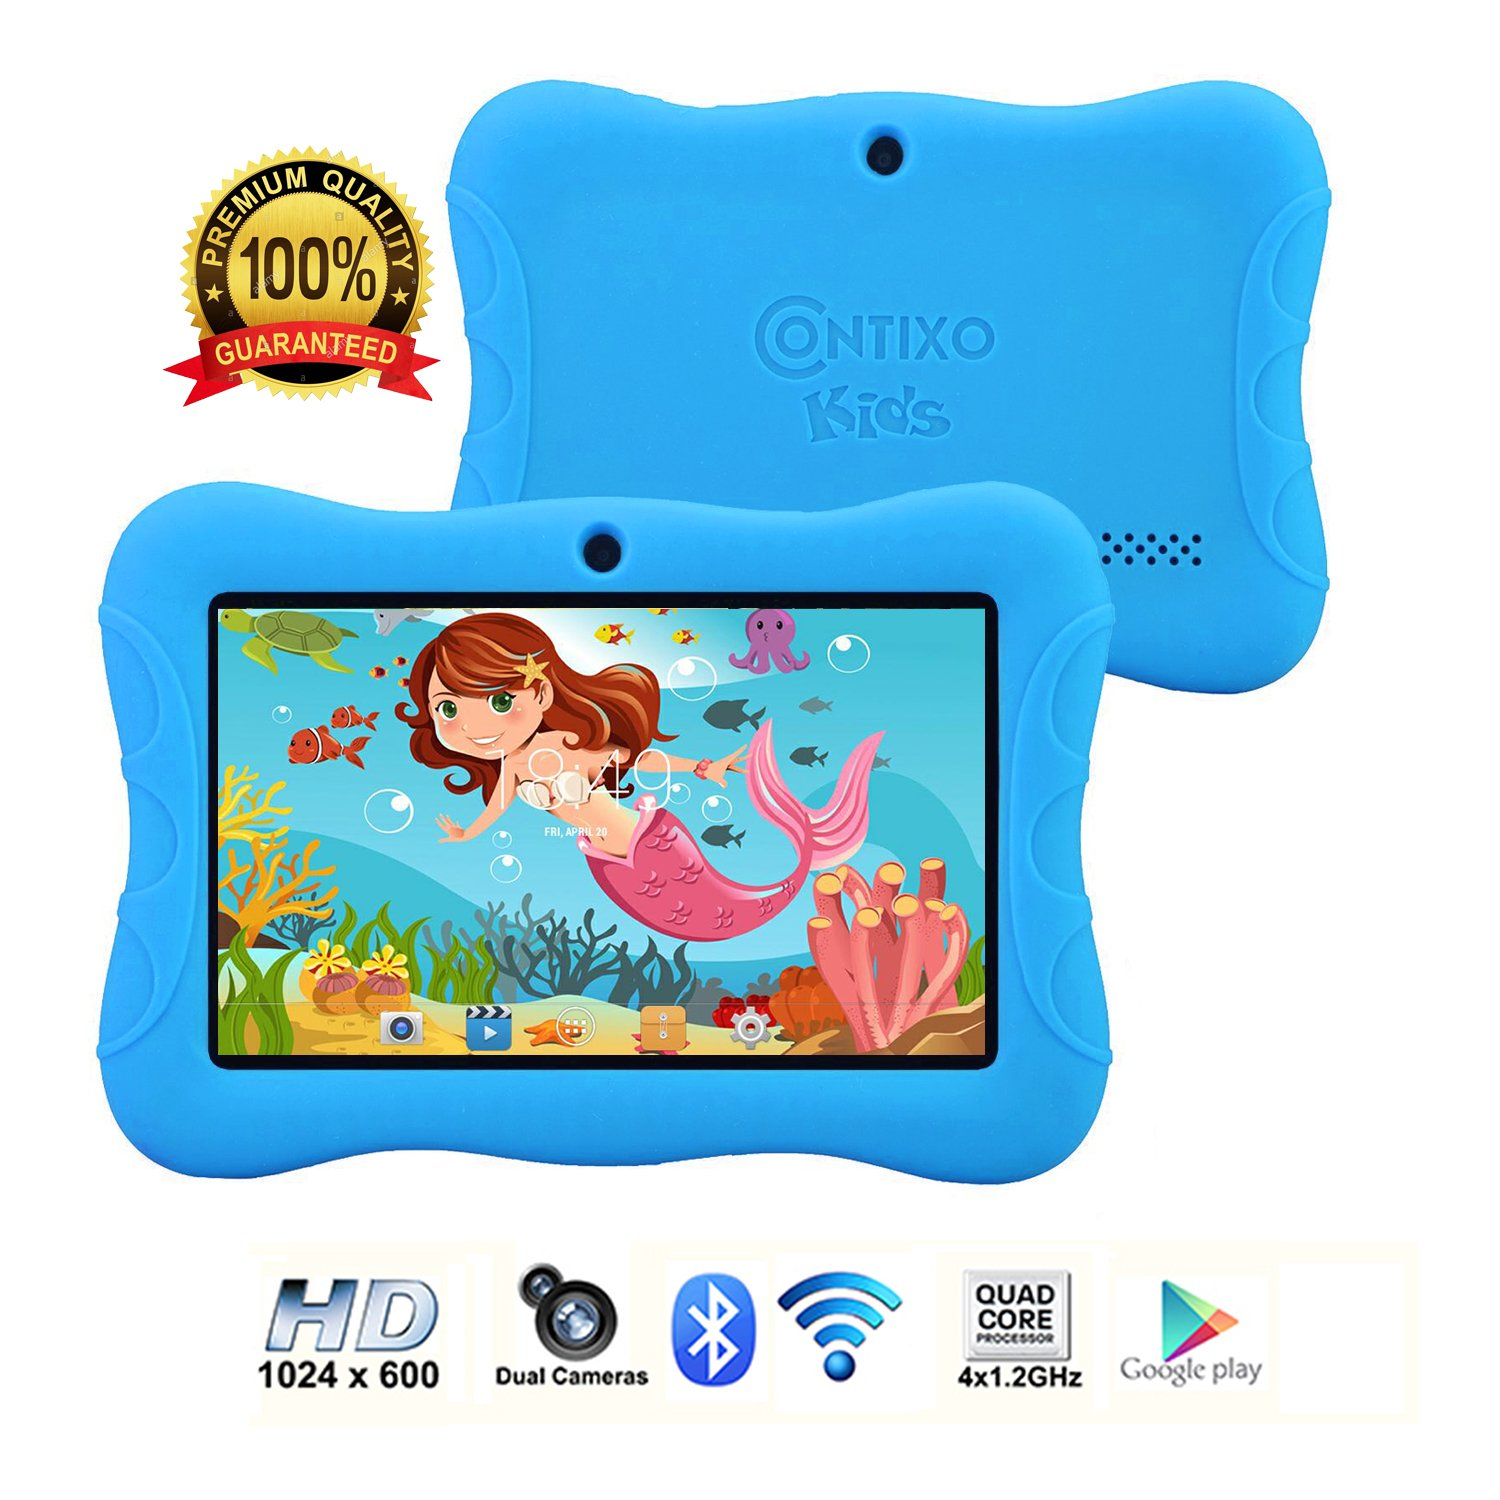 Contixo Kids Tablet K3 | 7'' Display Android 6.0 Bluetooth WiFi Camera Parental Control for Children Infant Toddlers w/Free Tablet Case (Sky Blue)